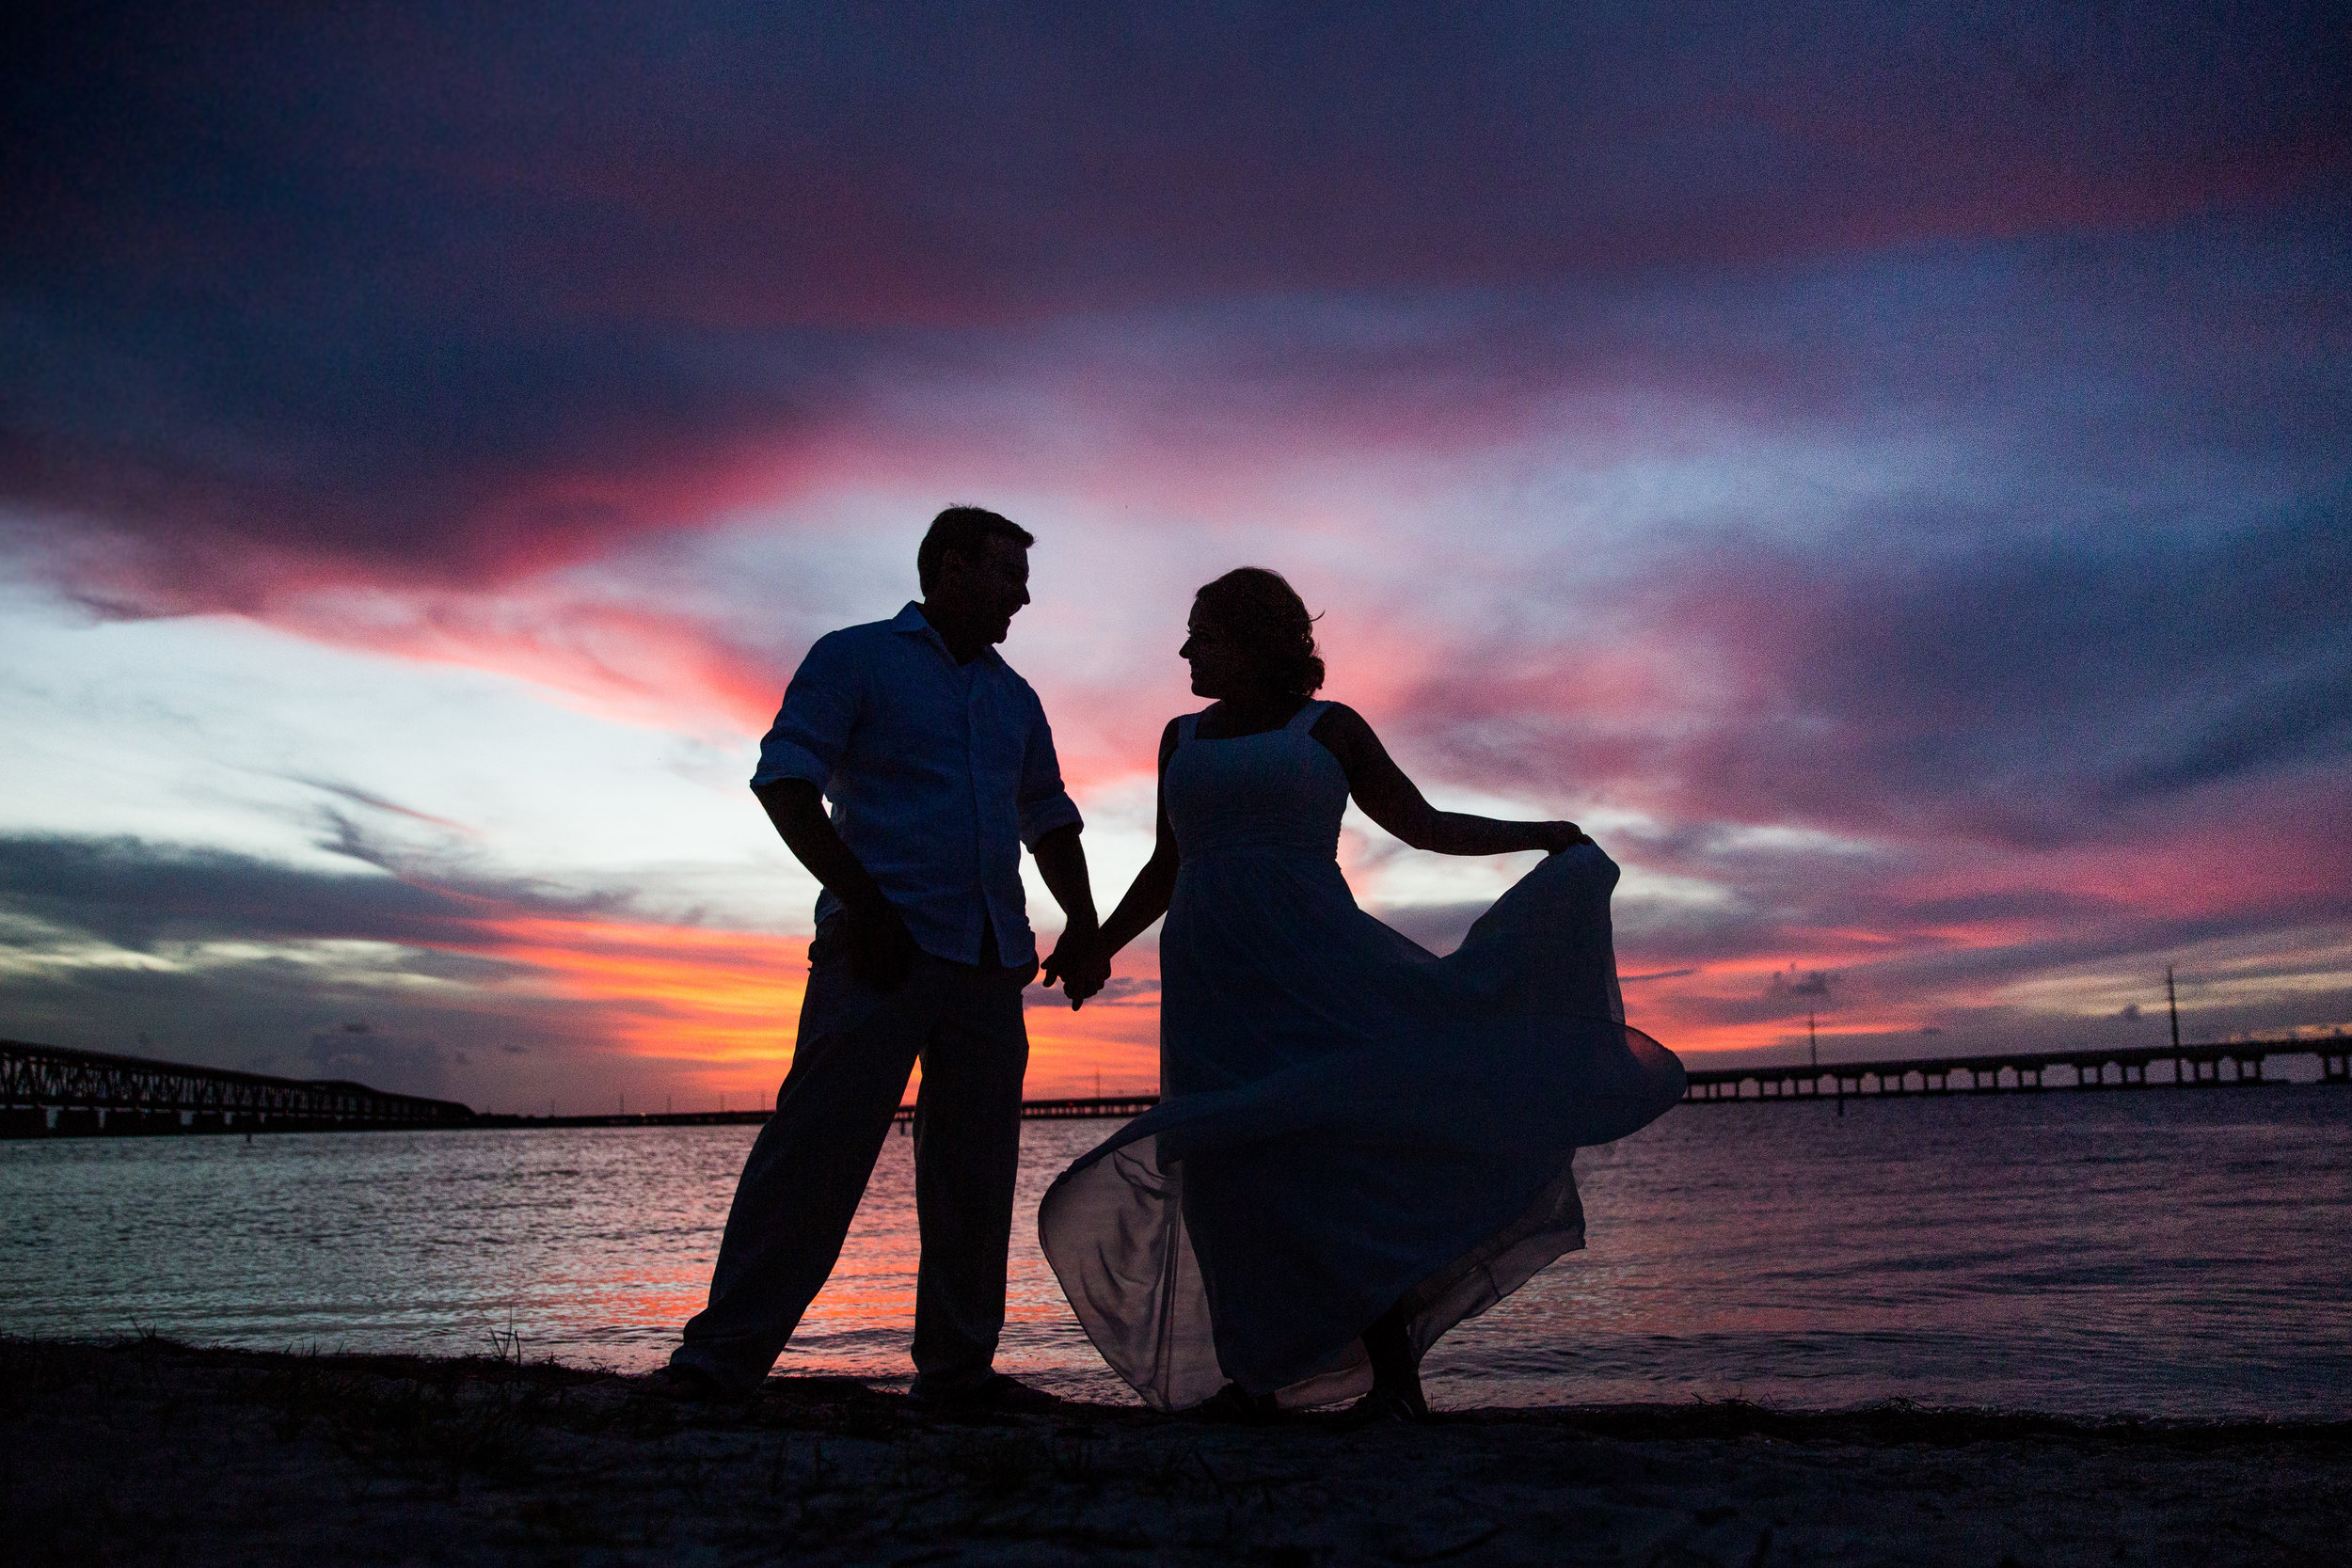 Silhouette-wedding-couple-at-sunset-bahia-honda-big-pine-key.jpg